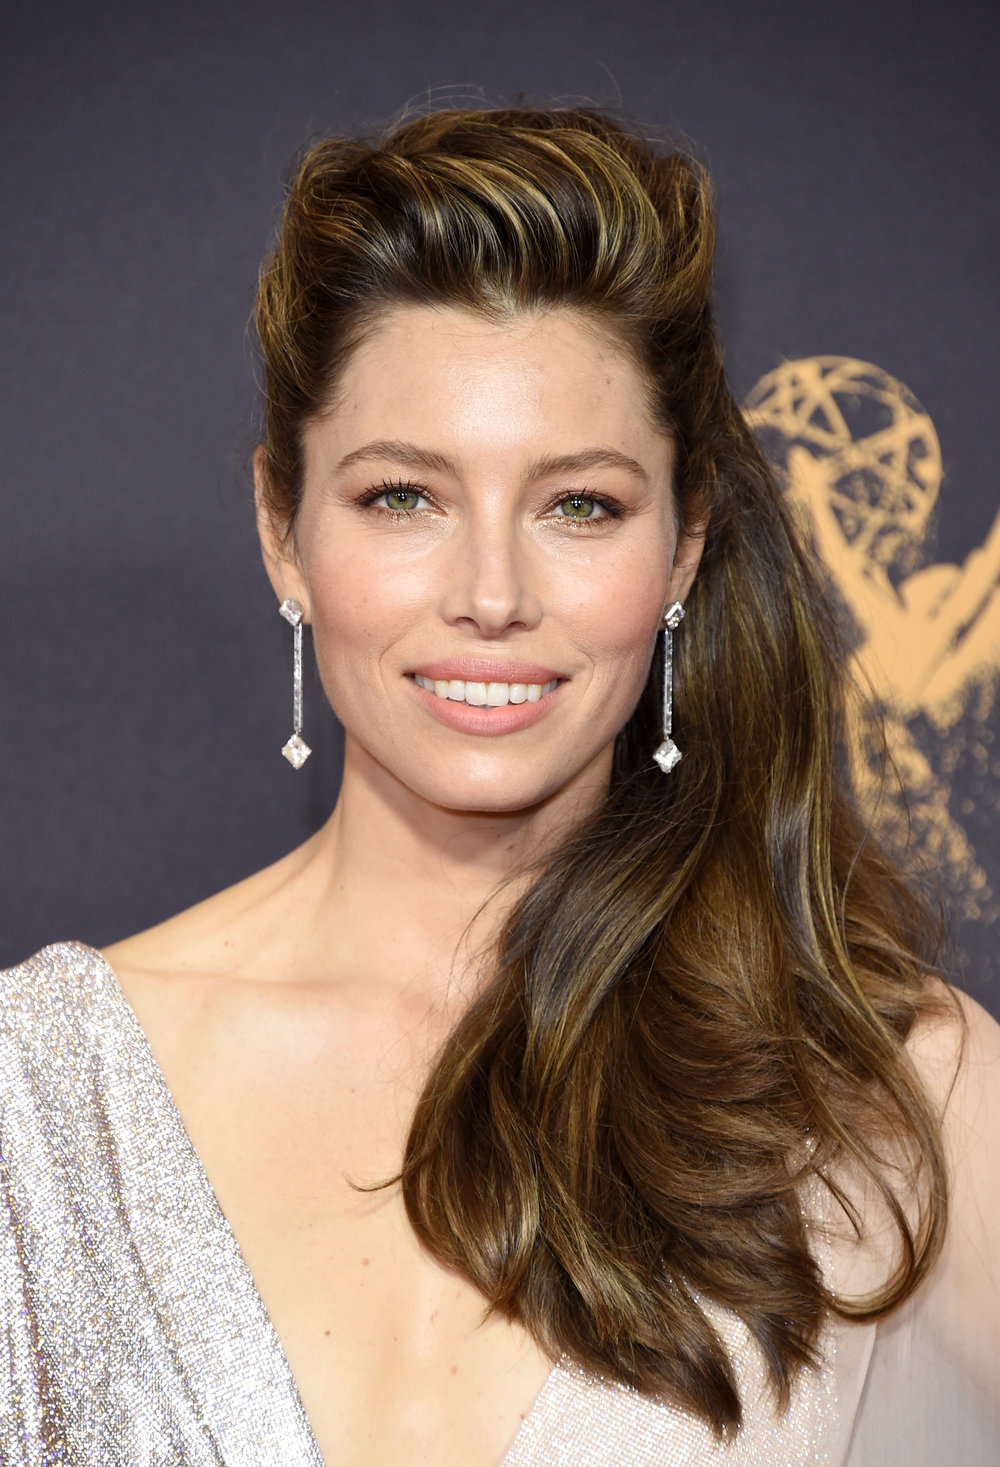 Jessia Biel at Primetime Emmy Awards Styled by Adir Abergel - getty images.jpg